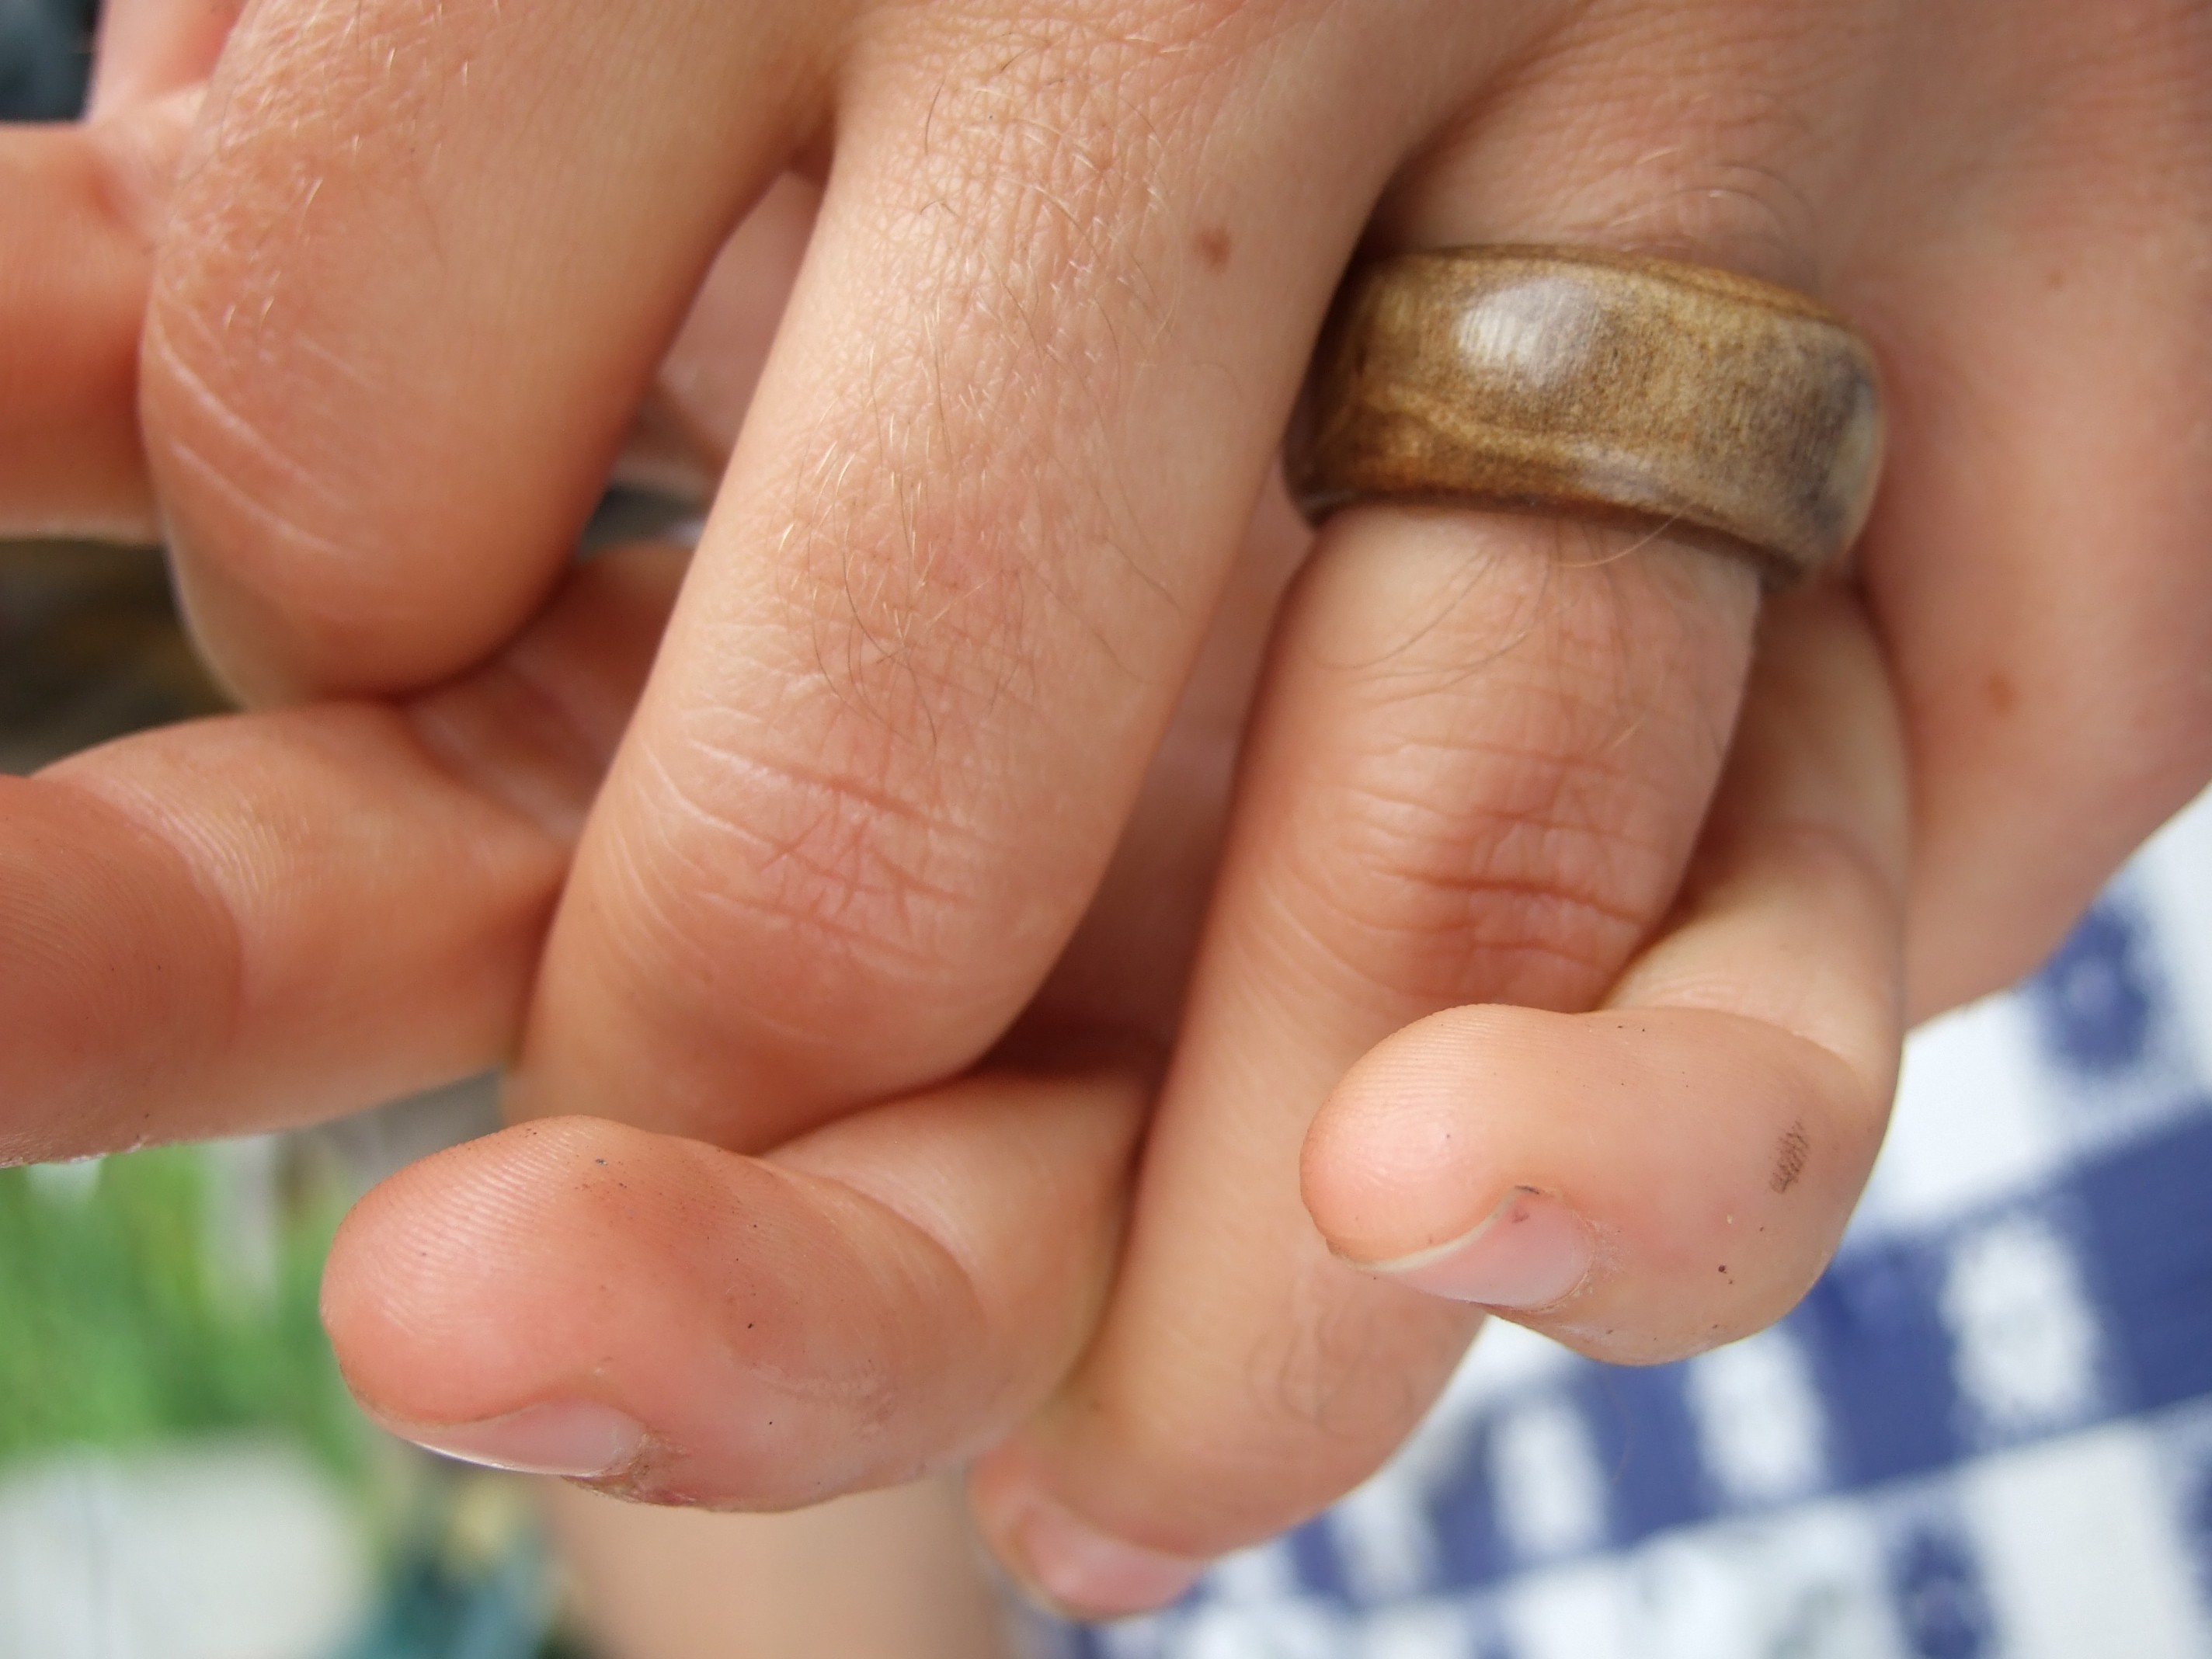 Two hands intertwined, one wearing a wooden ring